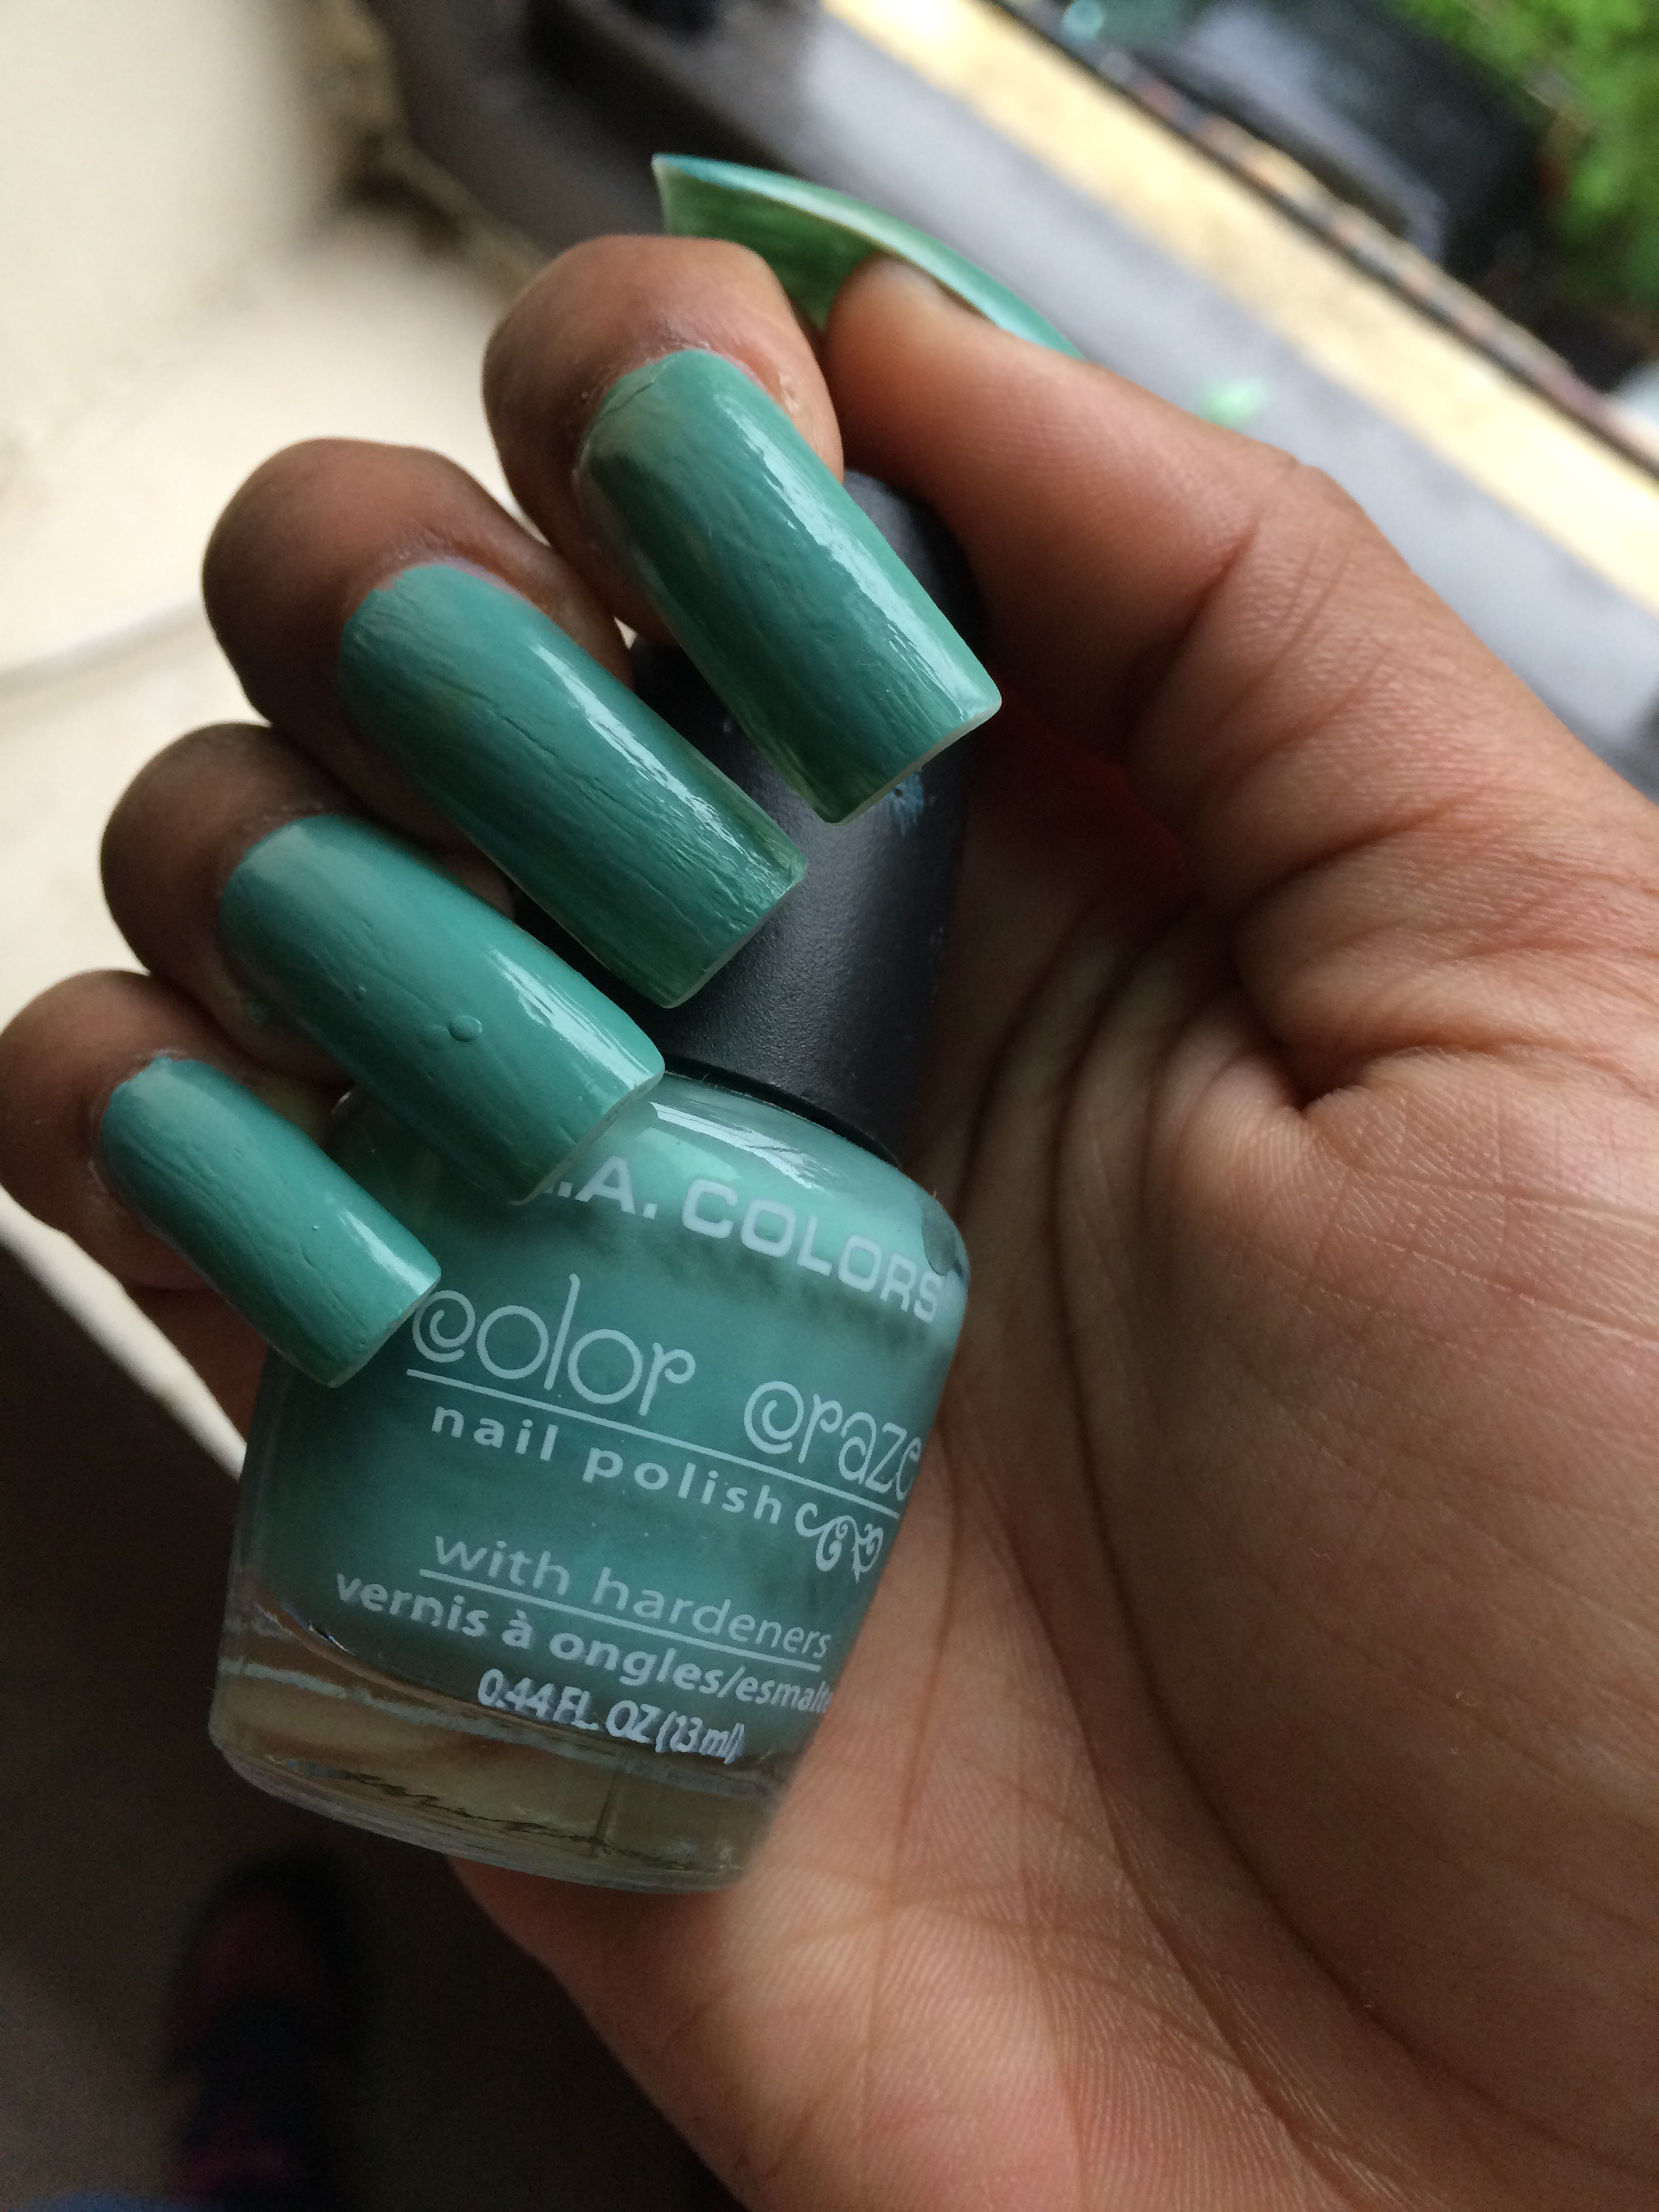 Not To Long Ago I Wrote A Post About The Brand Of Press On Nails Use Which You Can Find Here Today Im Going Tell